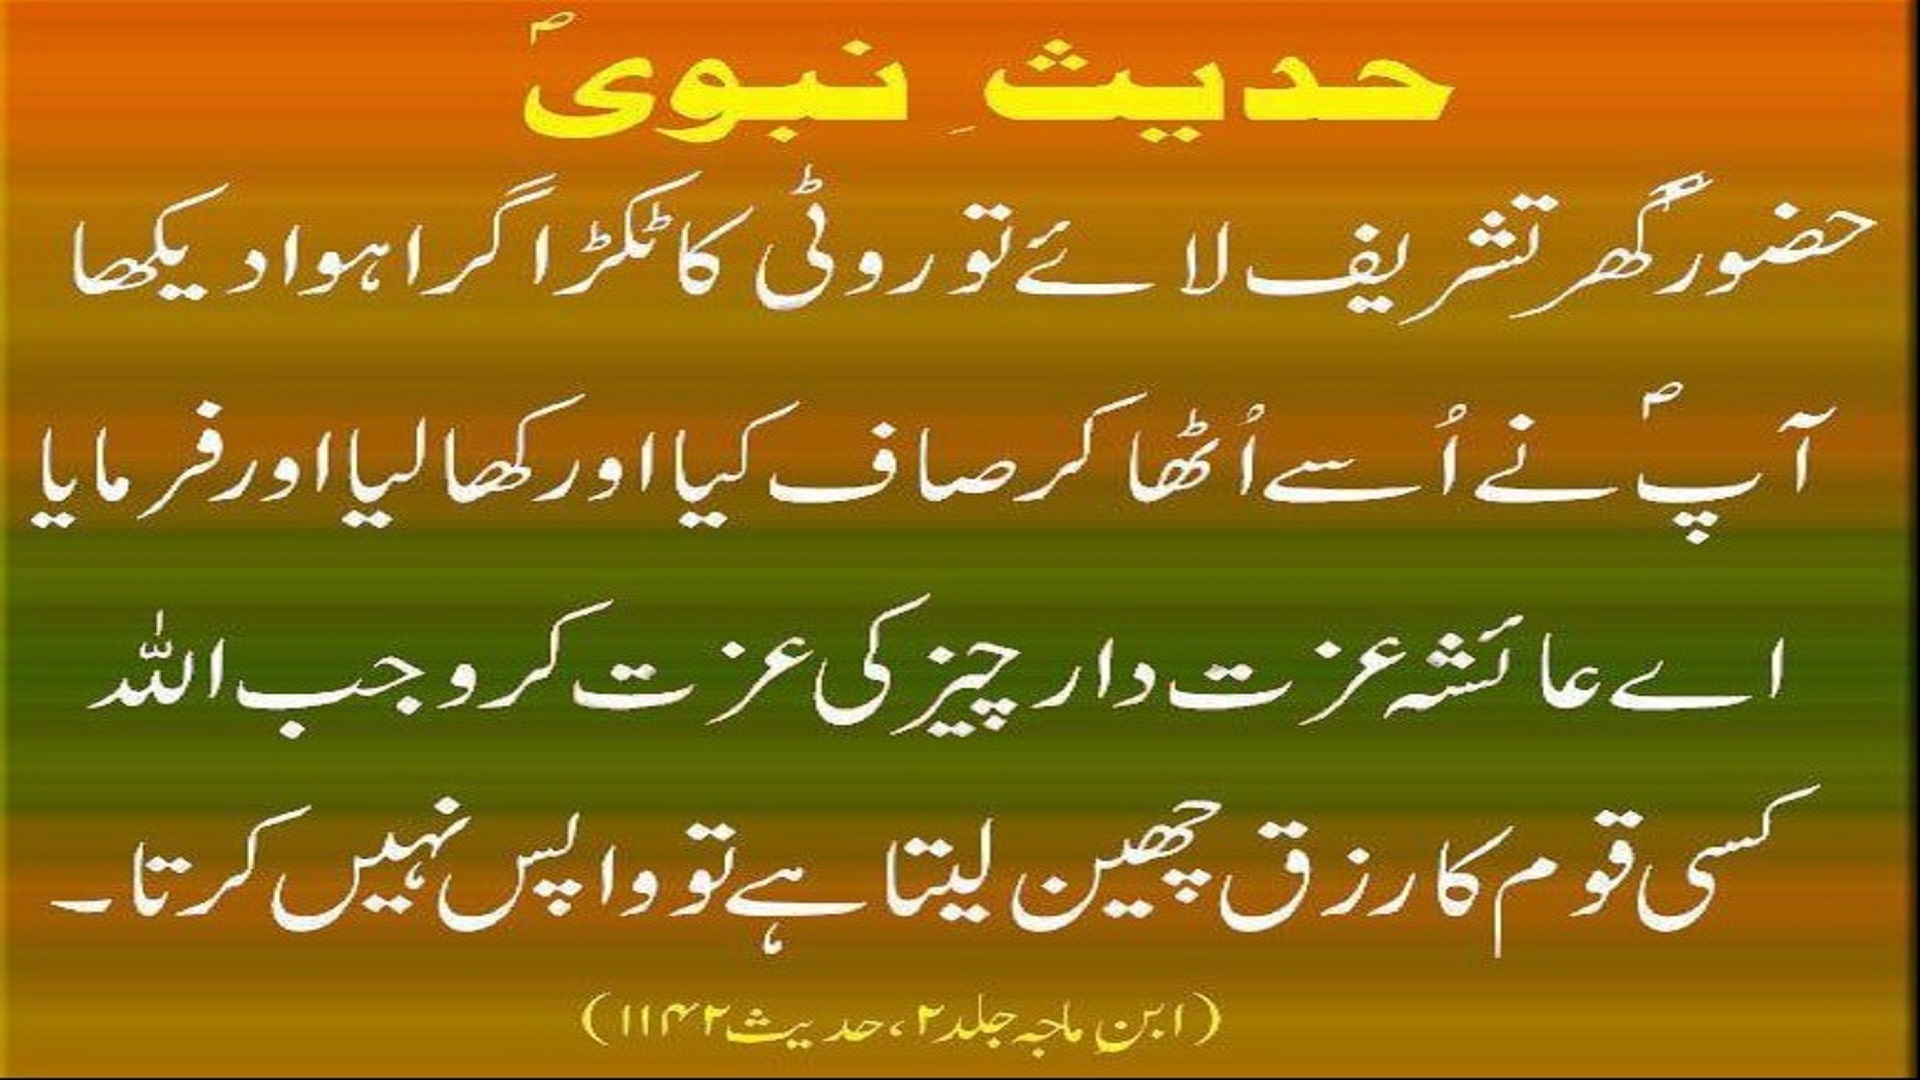 hadees abour rizq quotes abour rizq importance of